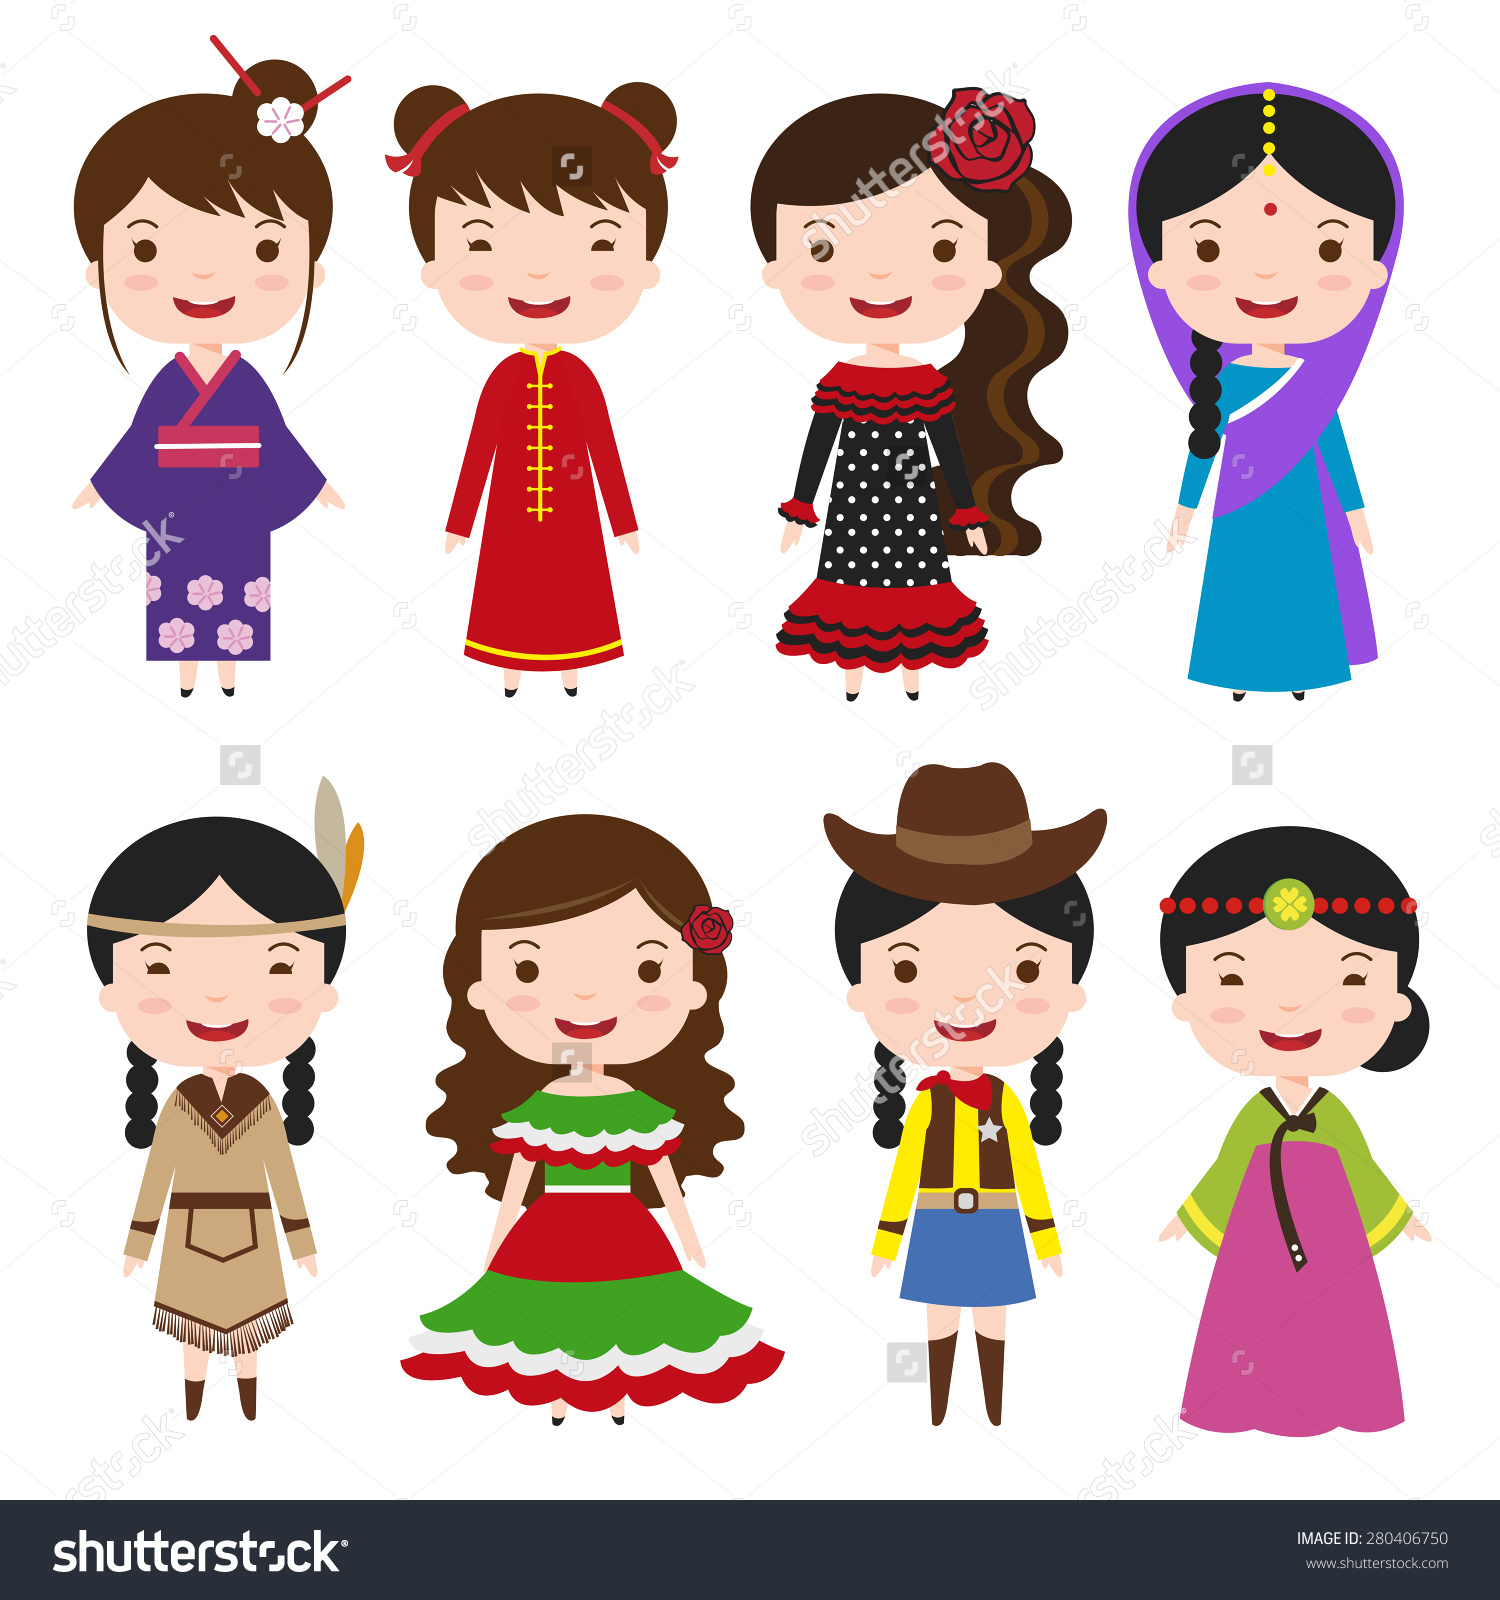 Traditional Costume clipart spanish music BBCpersian7 clipart collections costumes Traditional